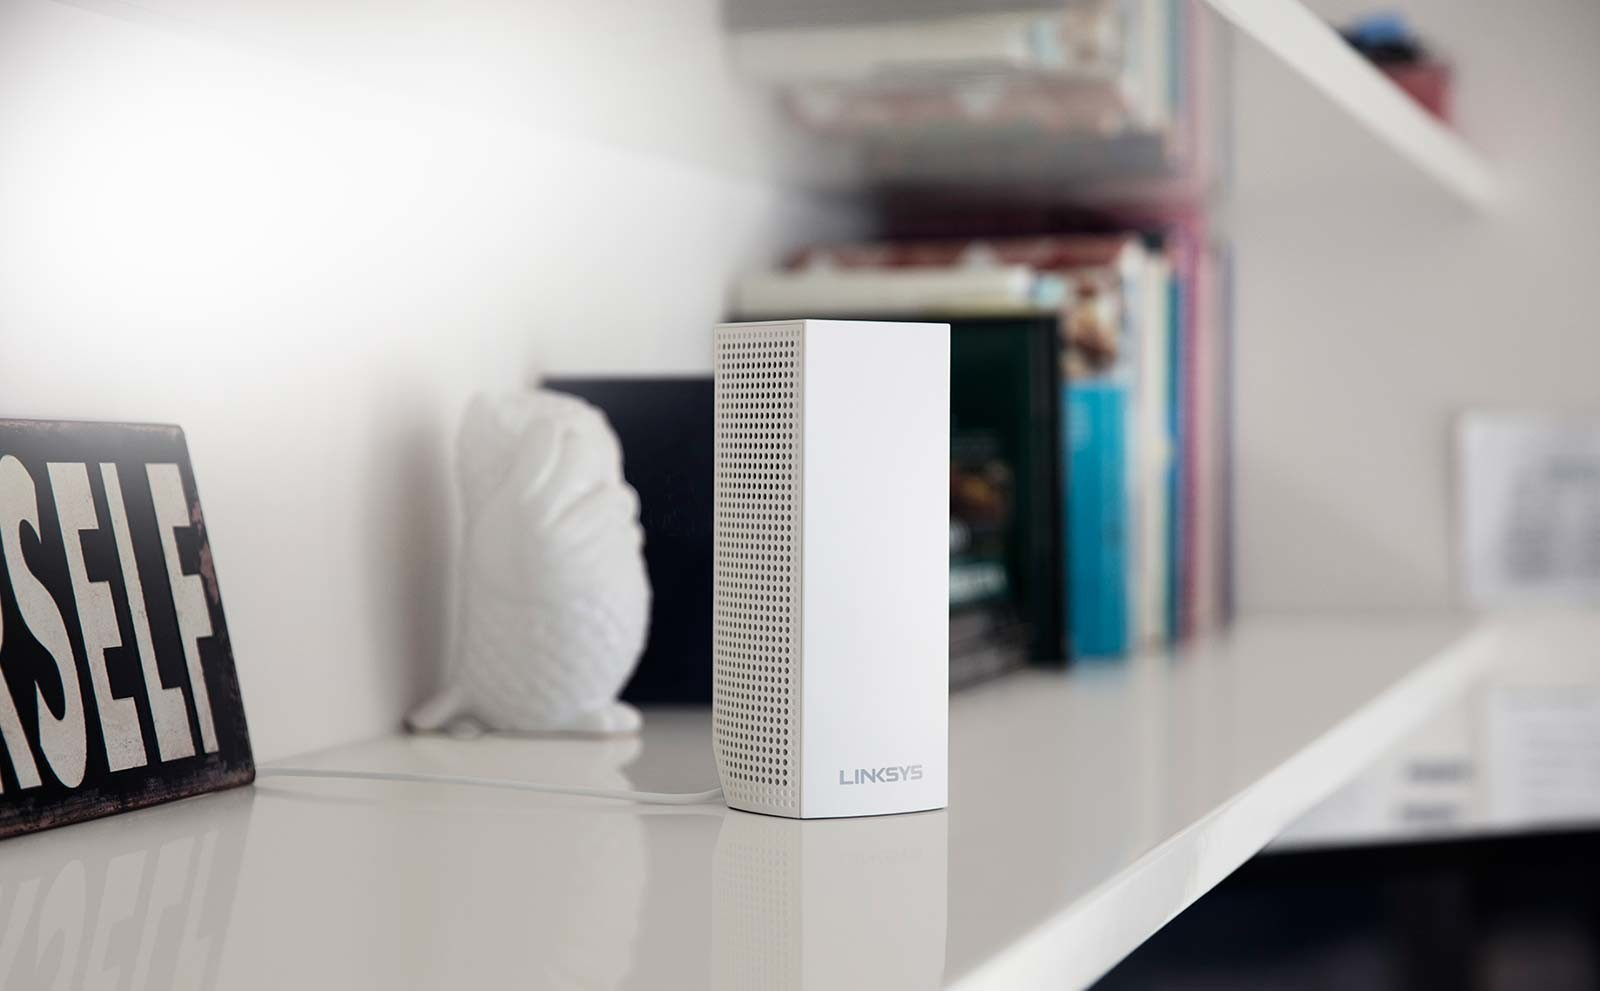 Top Things You Need to Know About ORBI